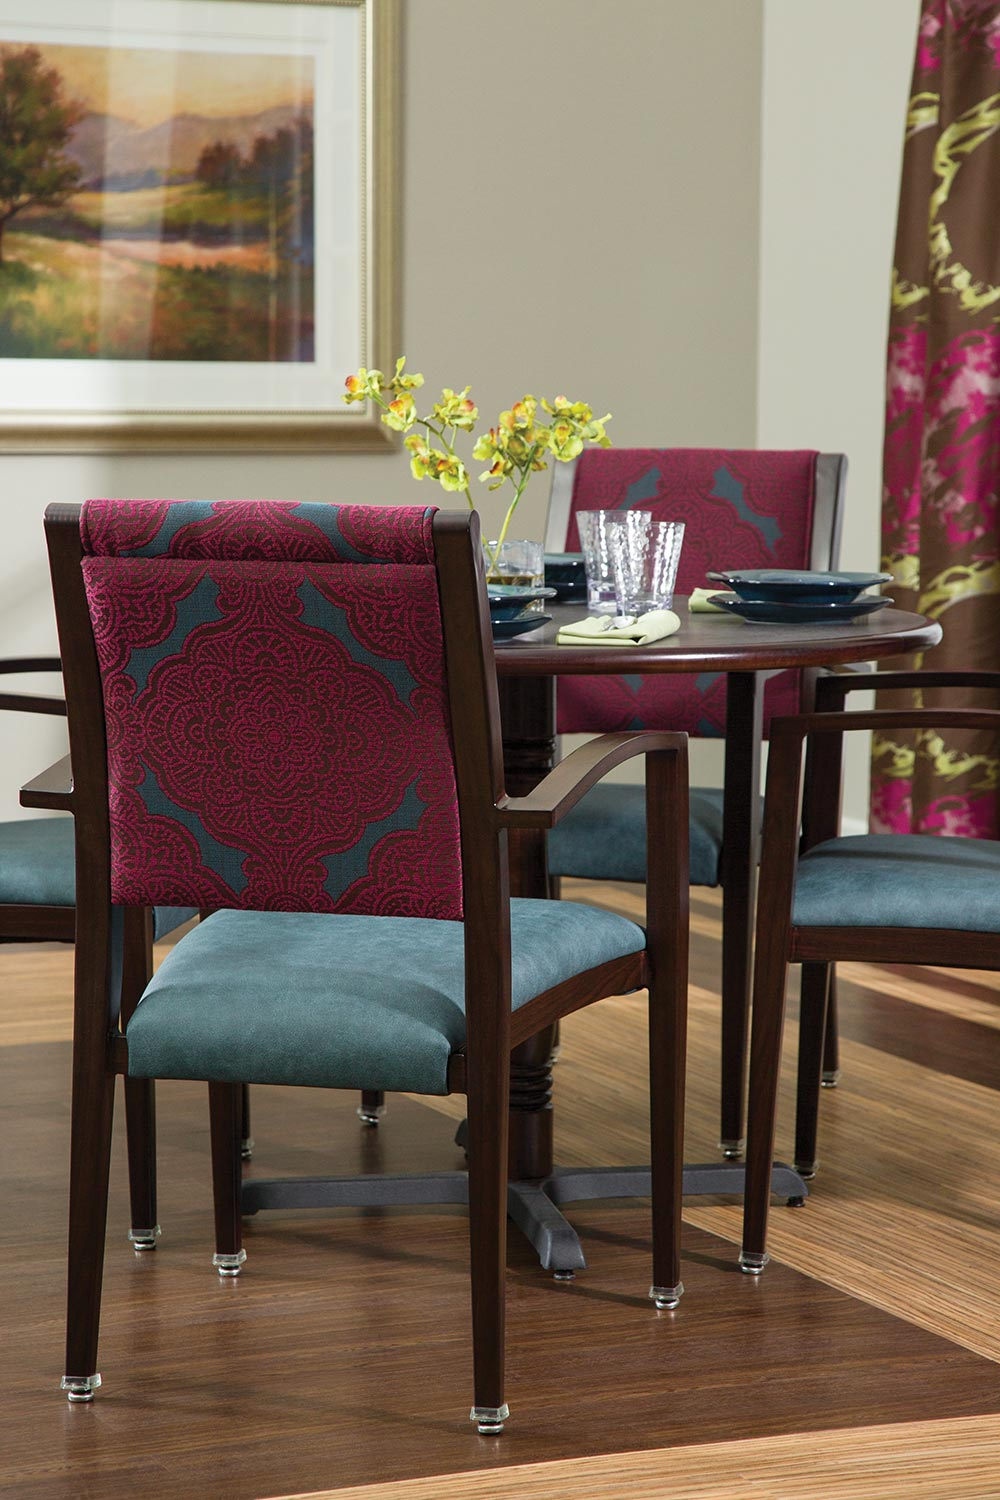 Faux-wood metal furnishings are durable and bleach-cleanable for demanding Senior Living environments.